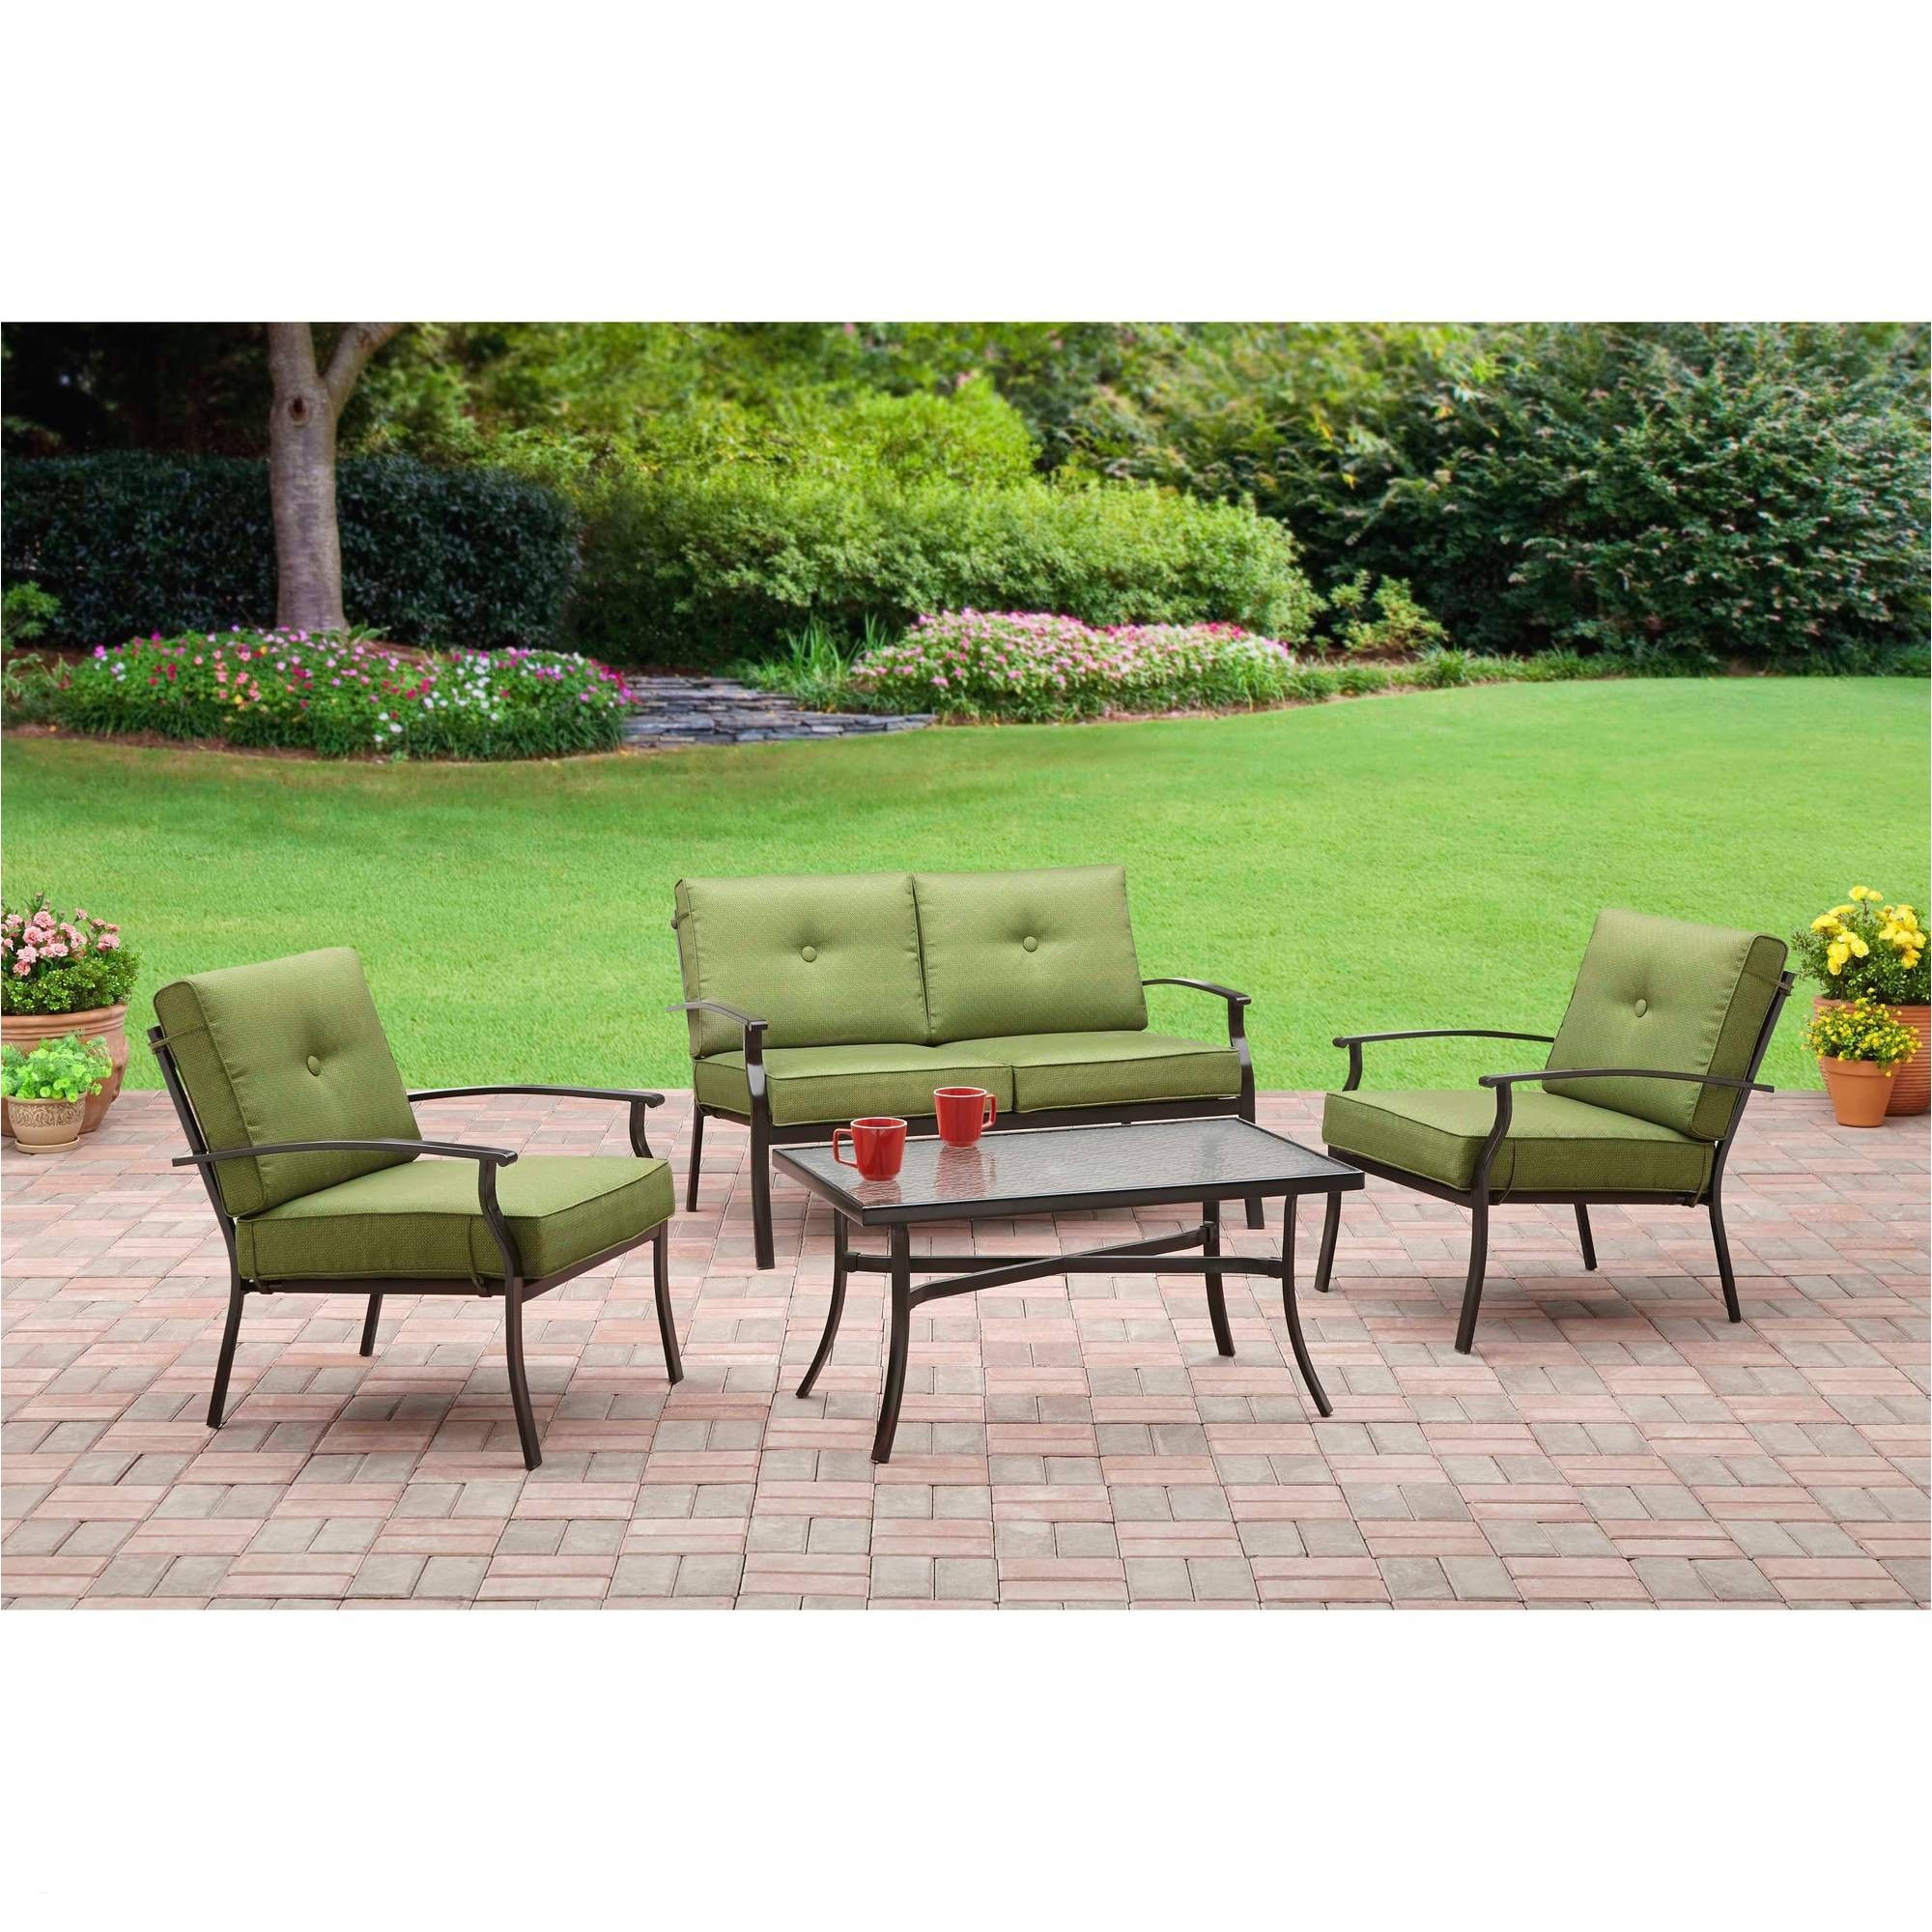 15 lovable mainstays patio furniture patio furniture concept of wegmans outdoor furniture